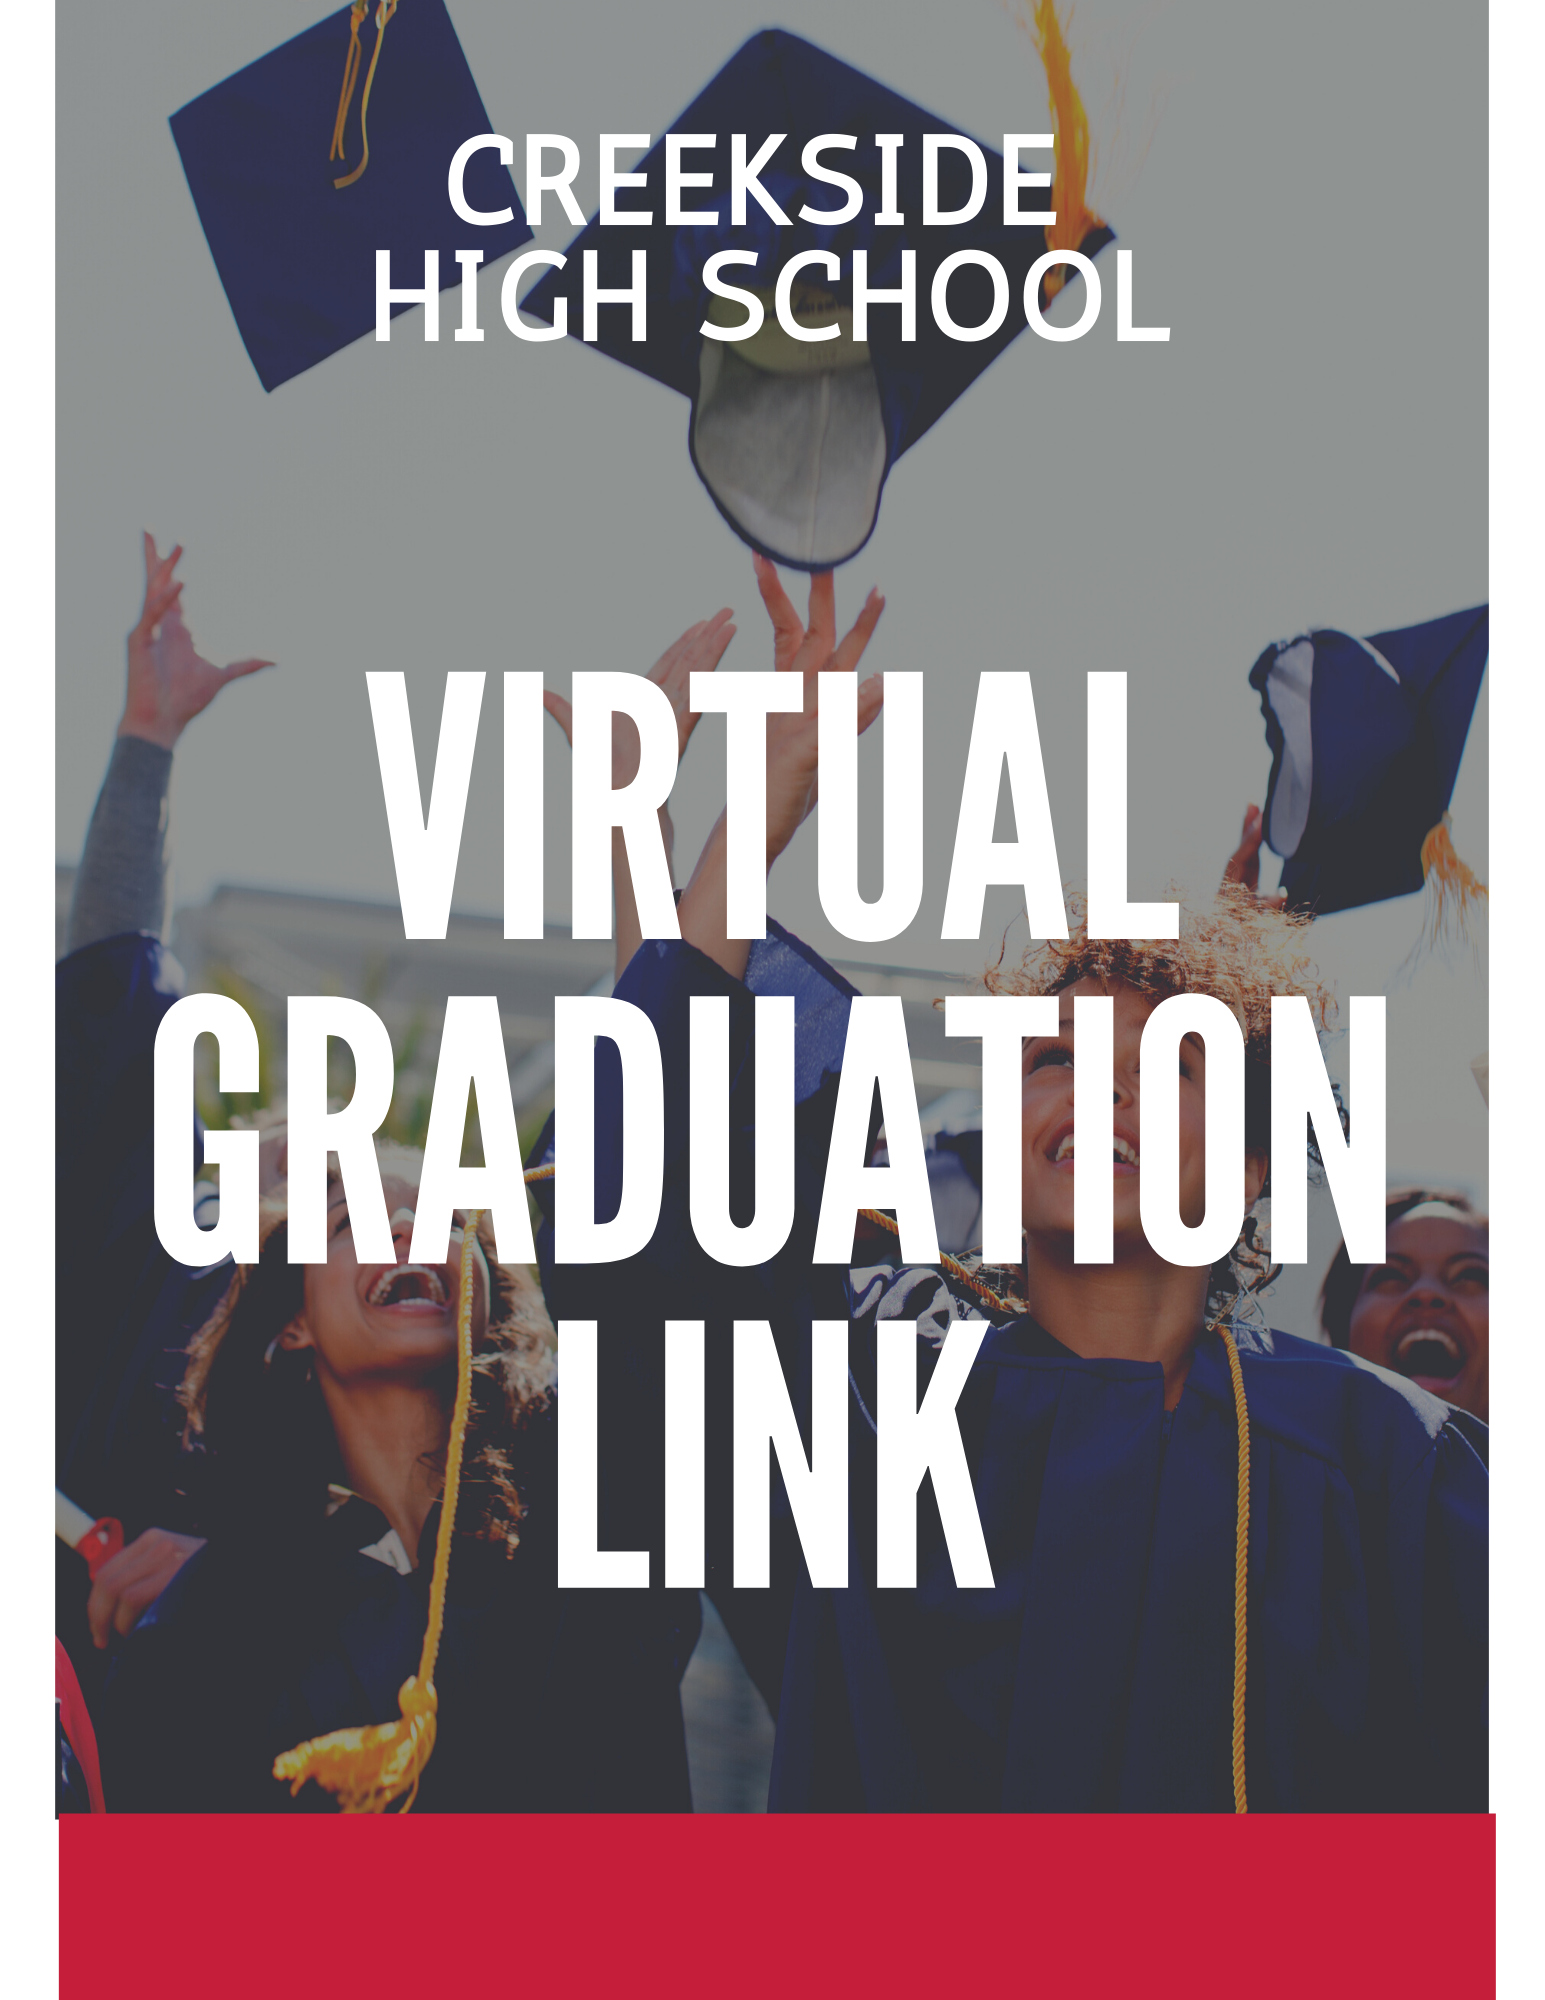 Click here to view our Virtual Graduation Link